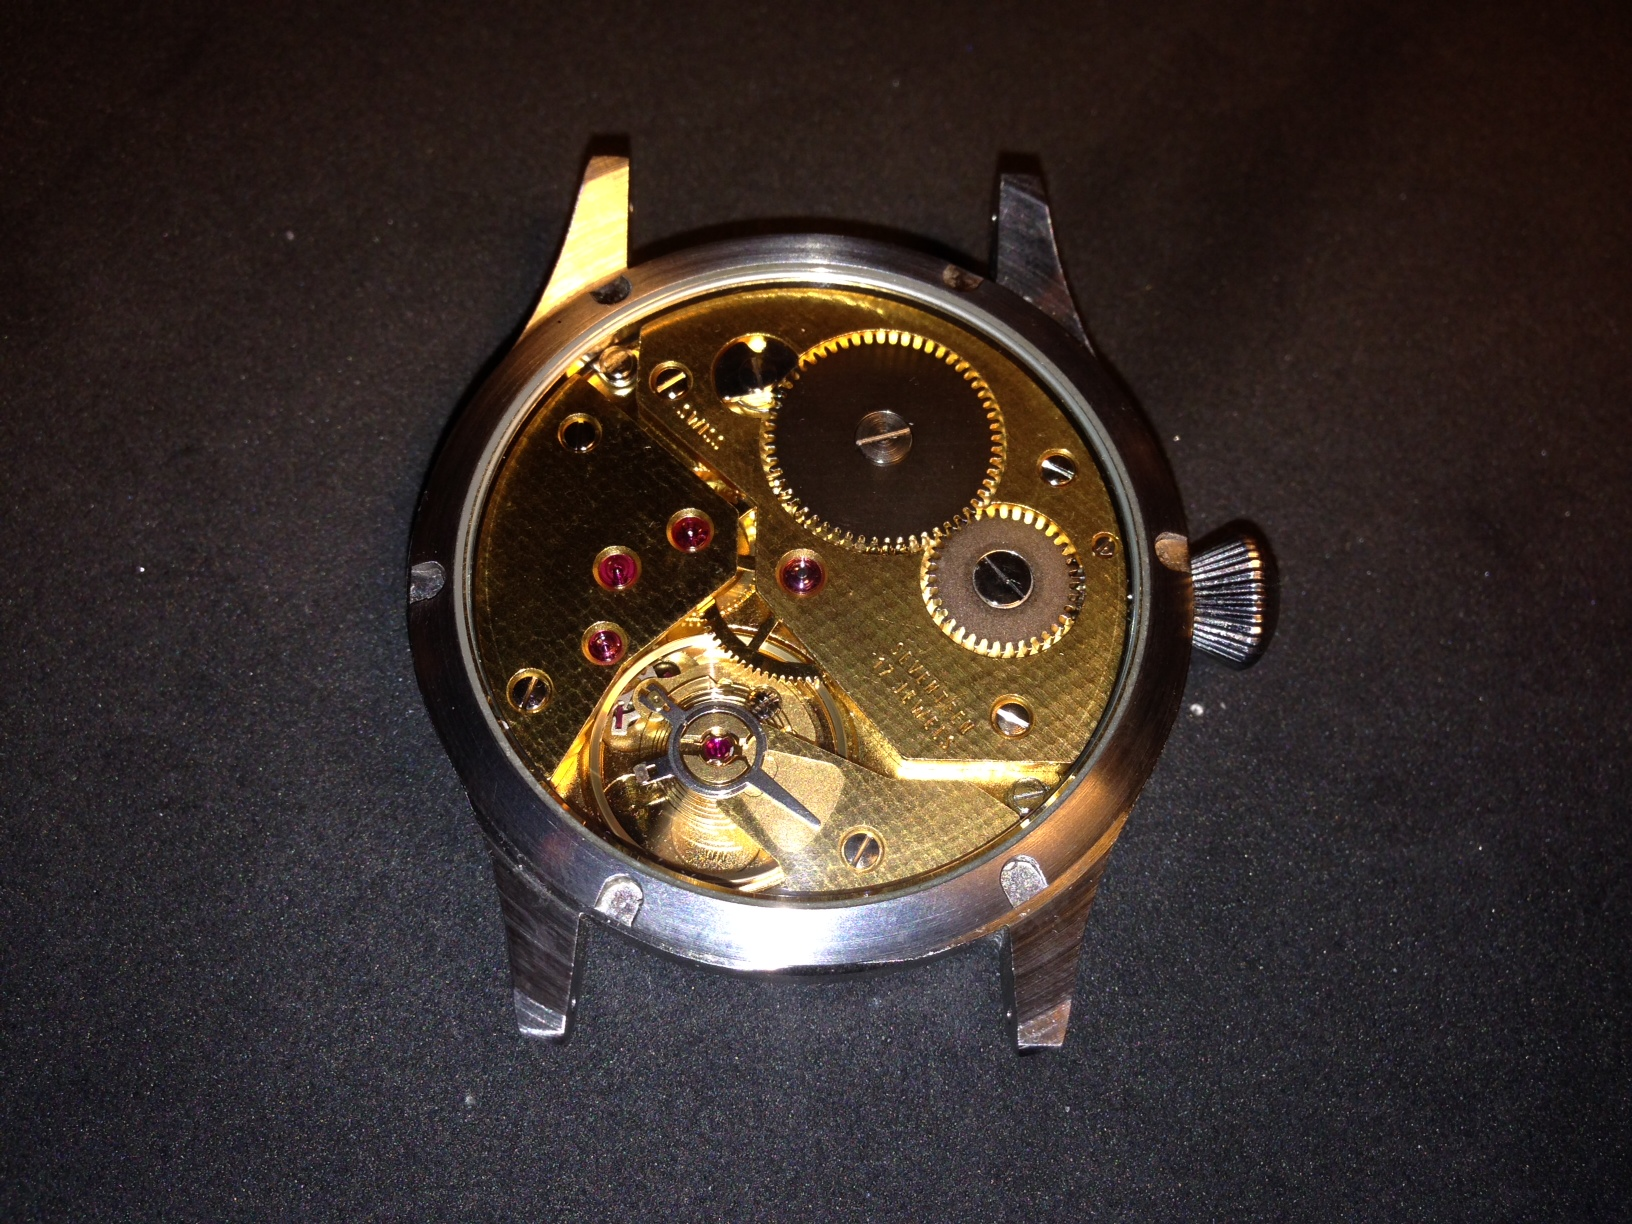 How to build your own mechanical watch - attaching the case back